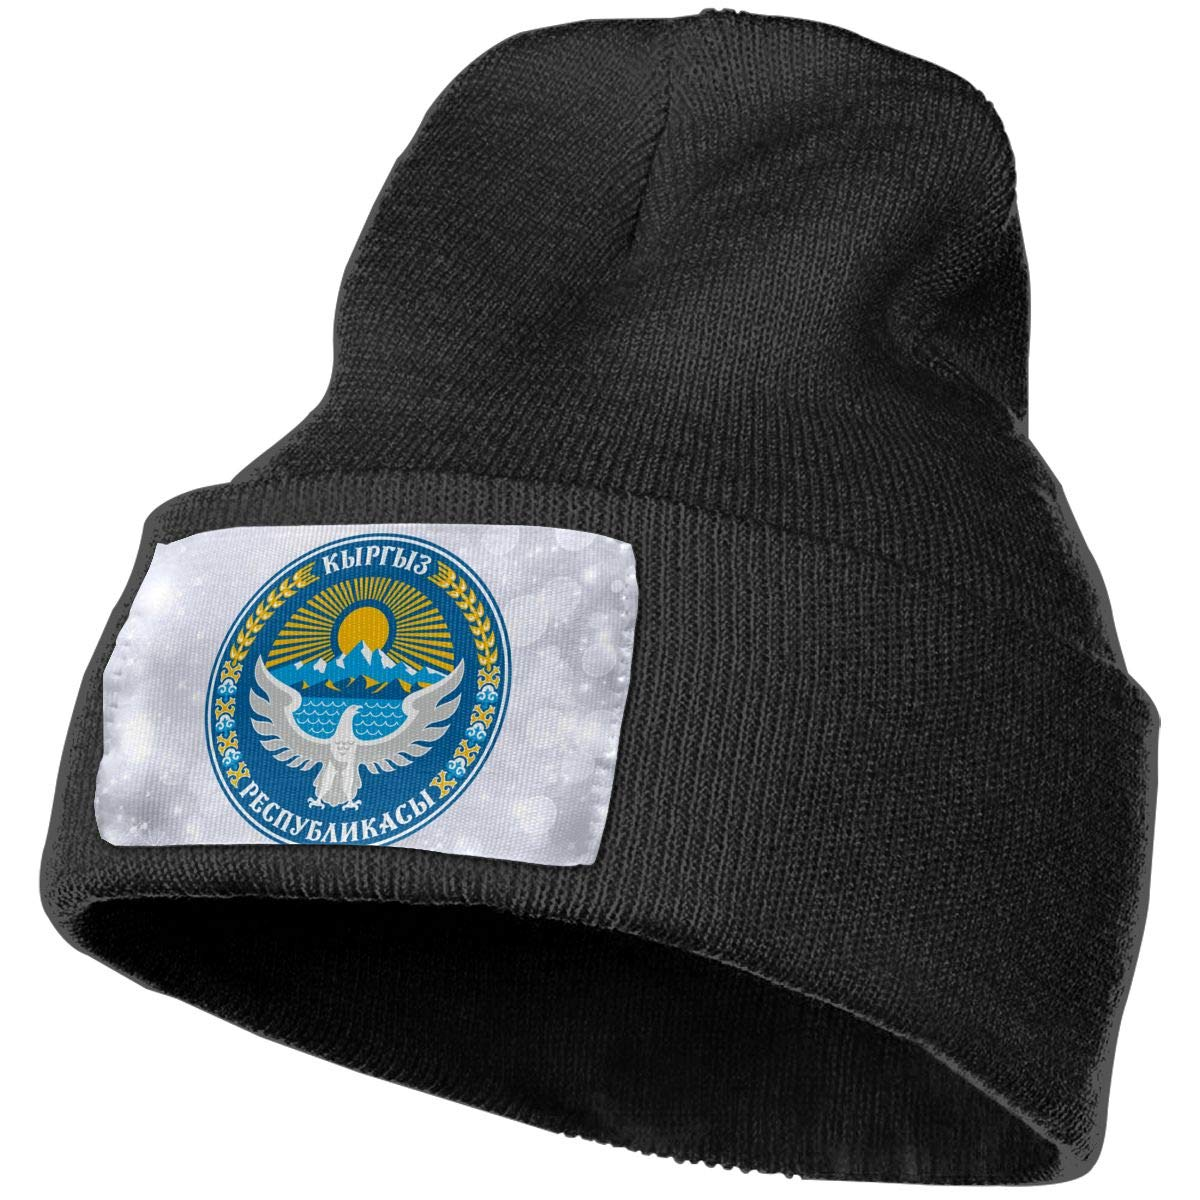 National Emblem of Kyrgyzstan Hat for Men and Women Winter Warm Hats Knit Slouchy Thick Skull Cap